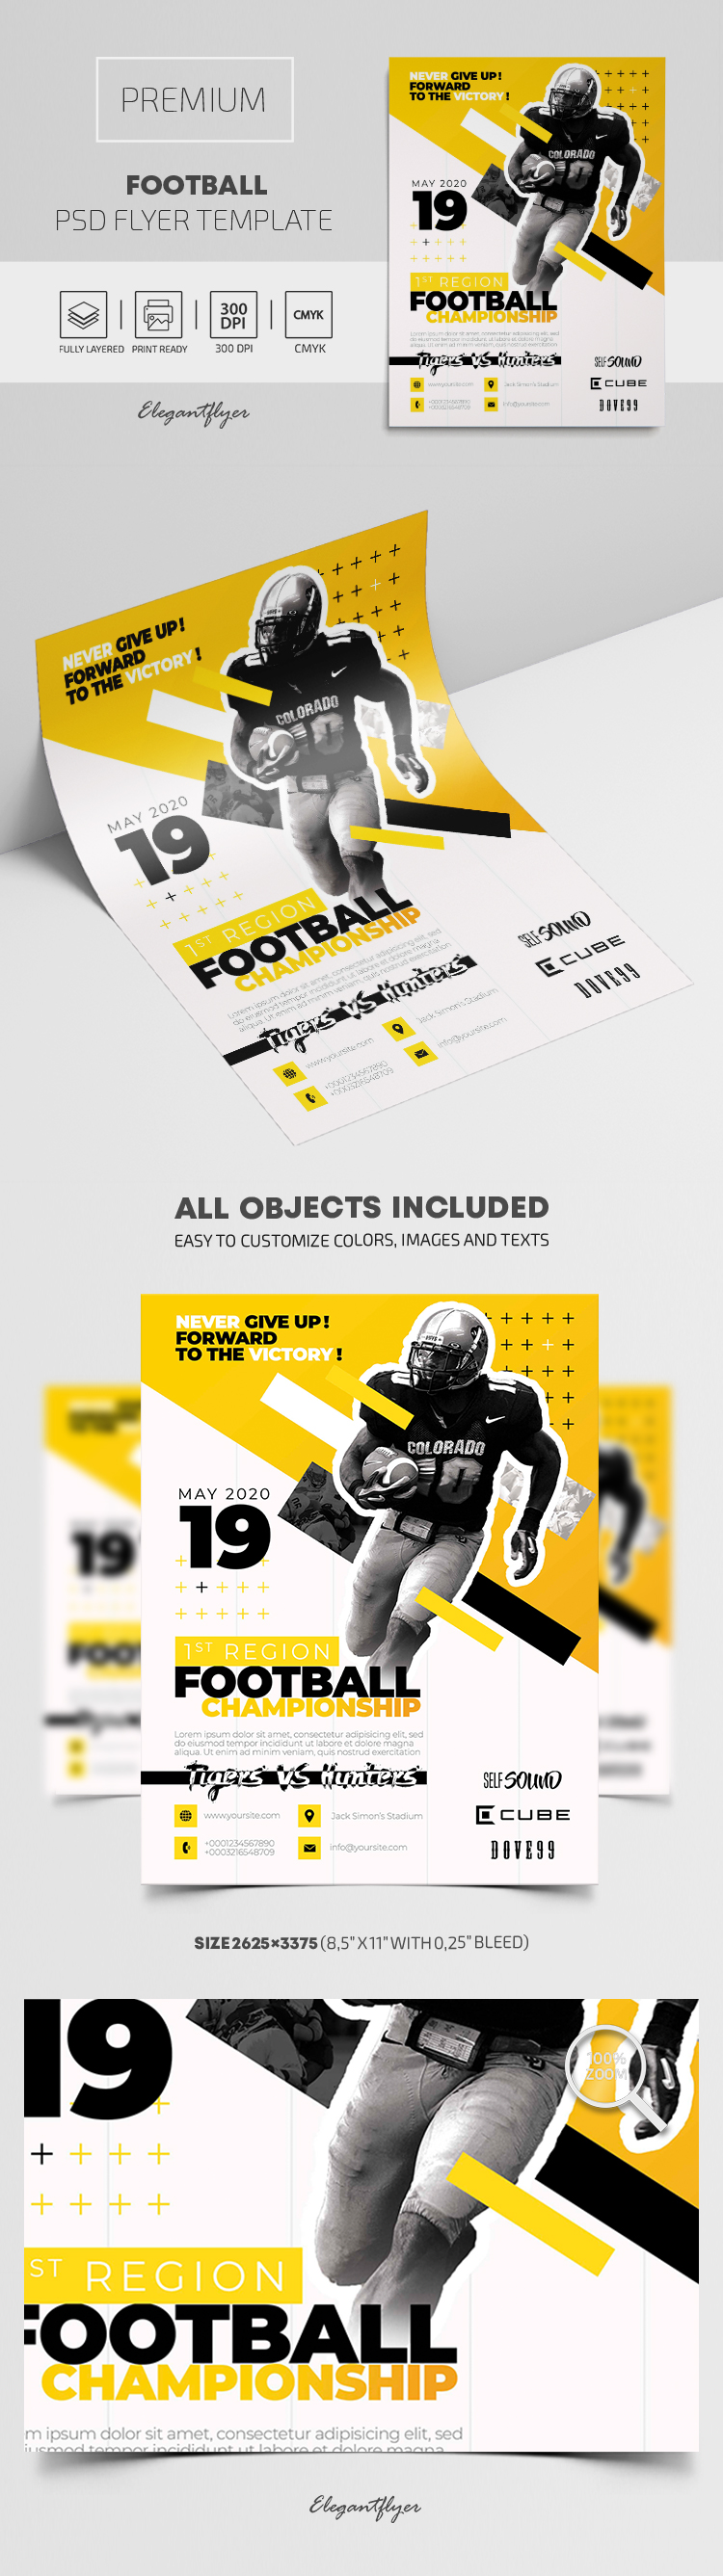 Football – Premium PSD Flyer Template